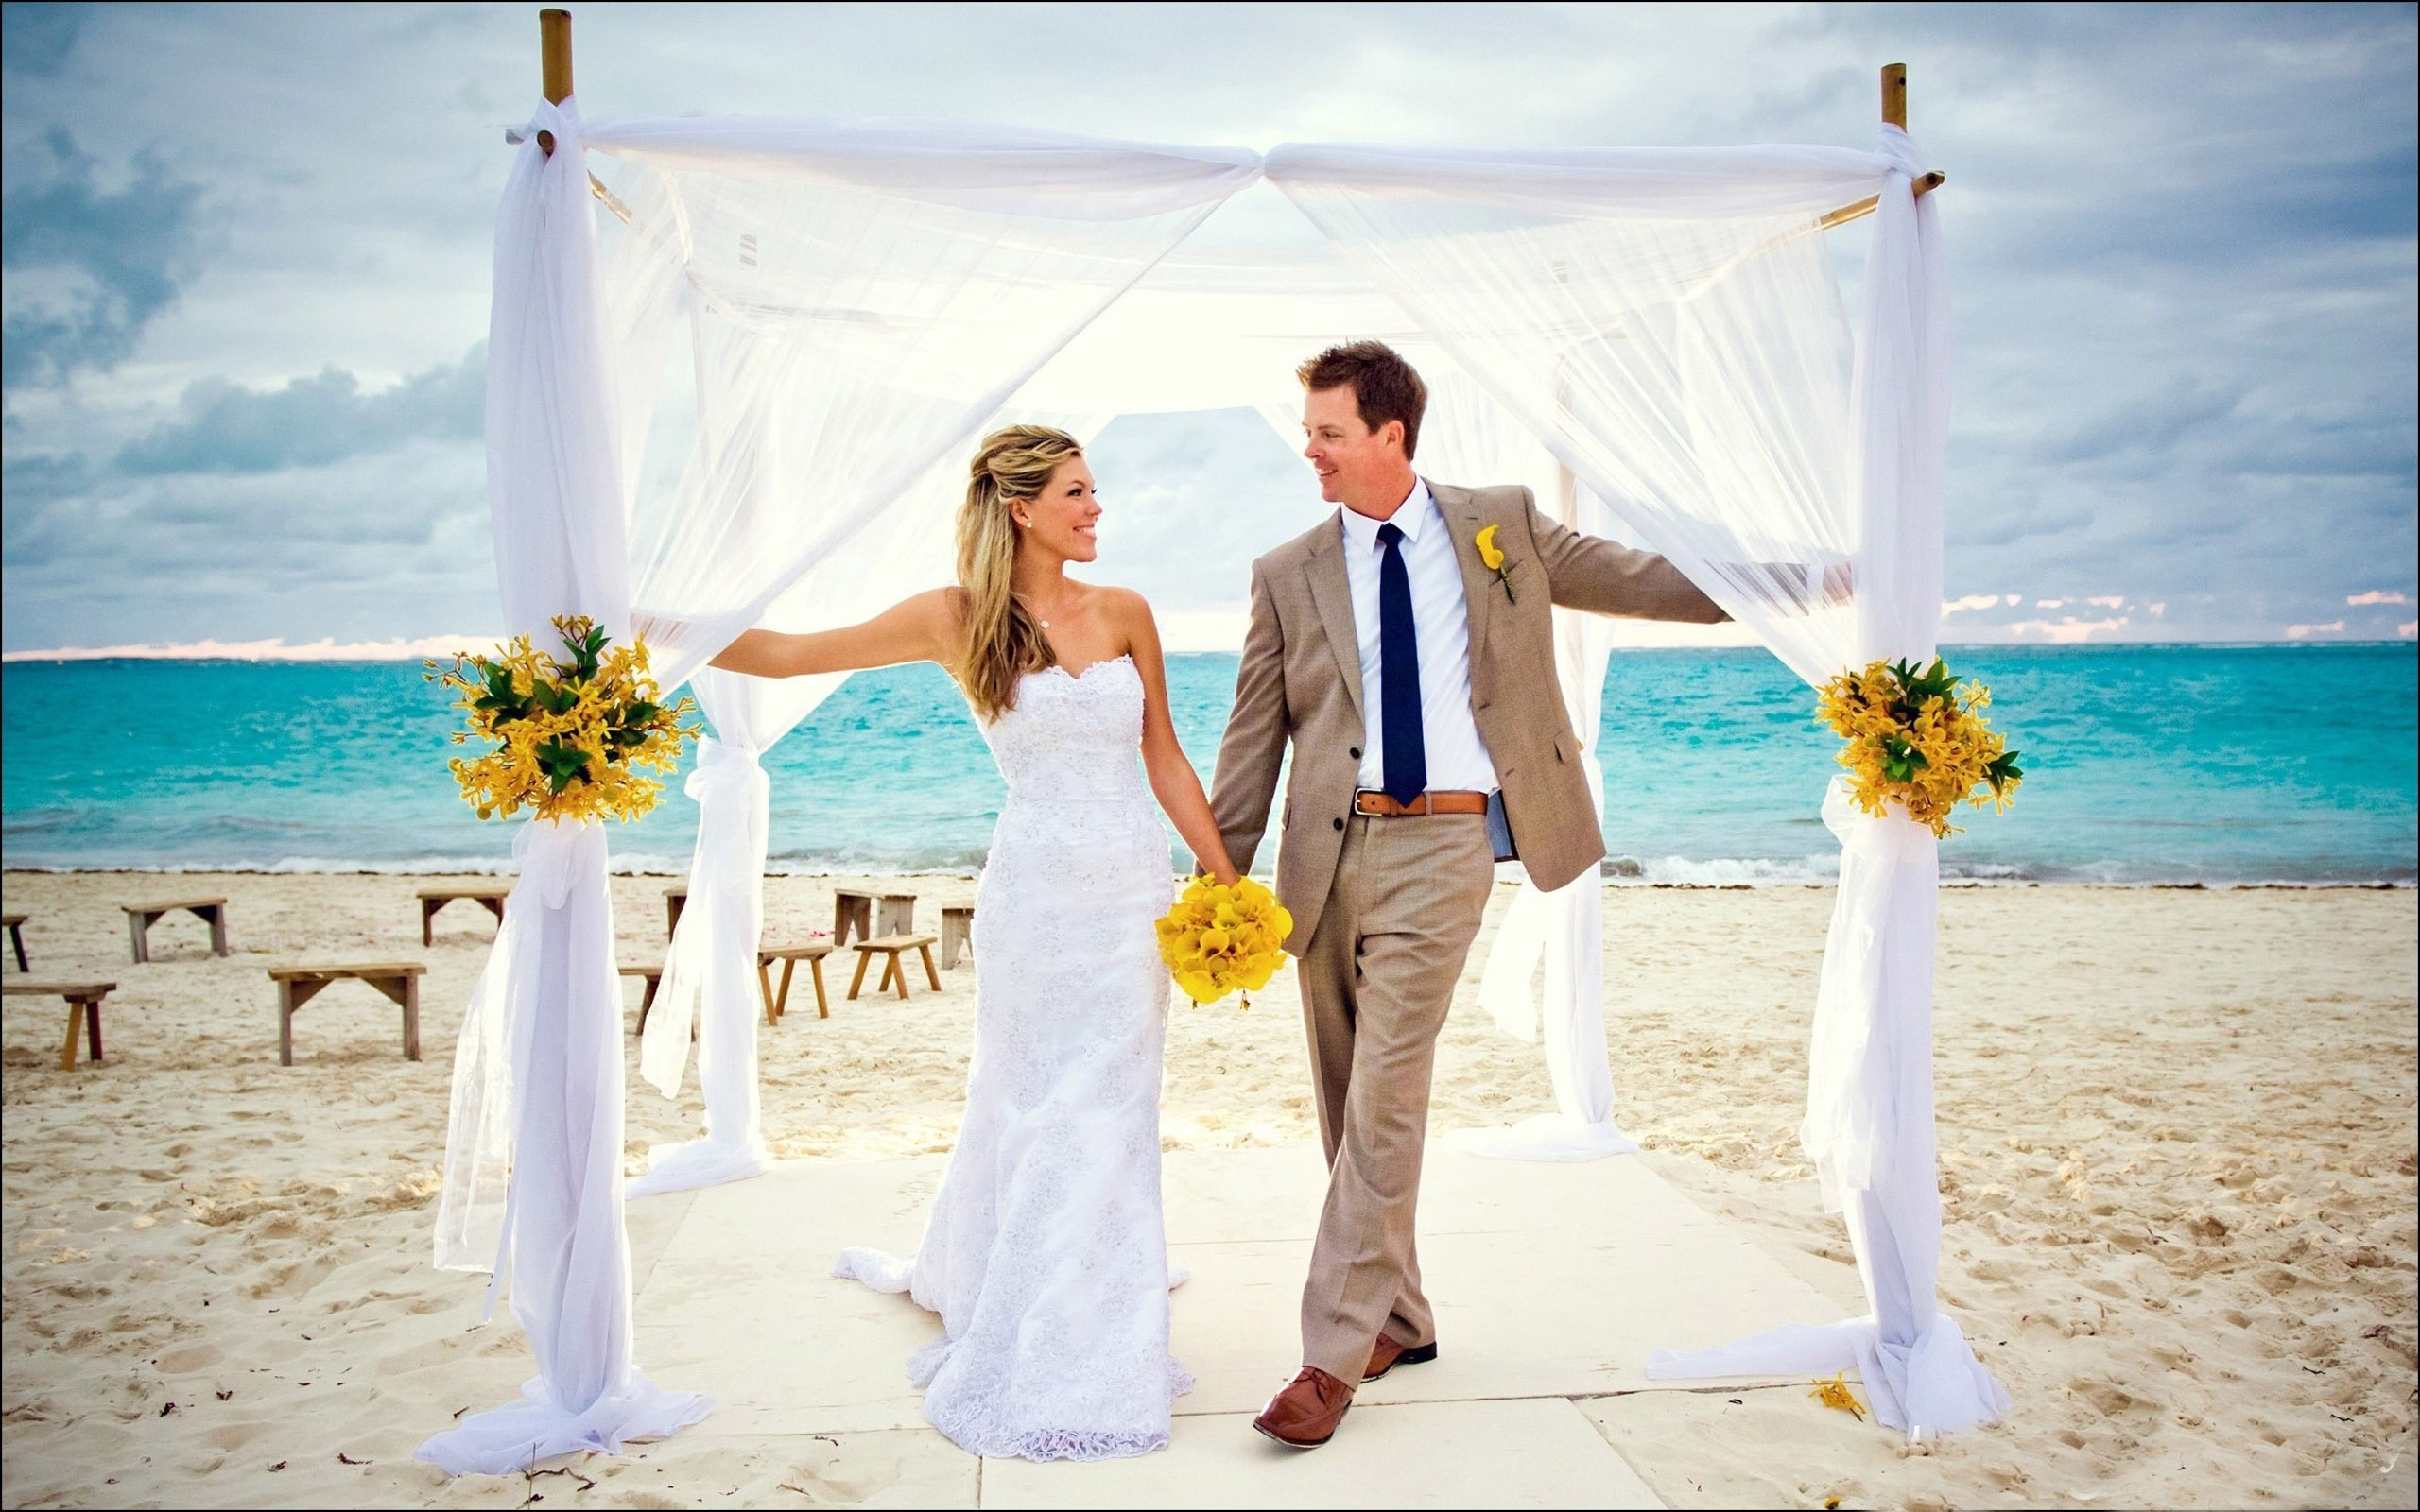 Beach Pics Ideas Beach Wedding Ideas 24 Cool Wallpapers Hd Wallpapers13